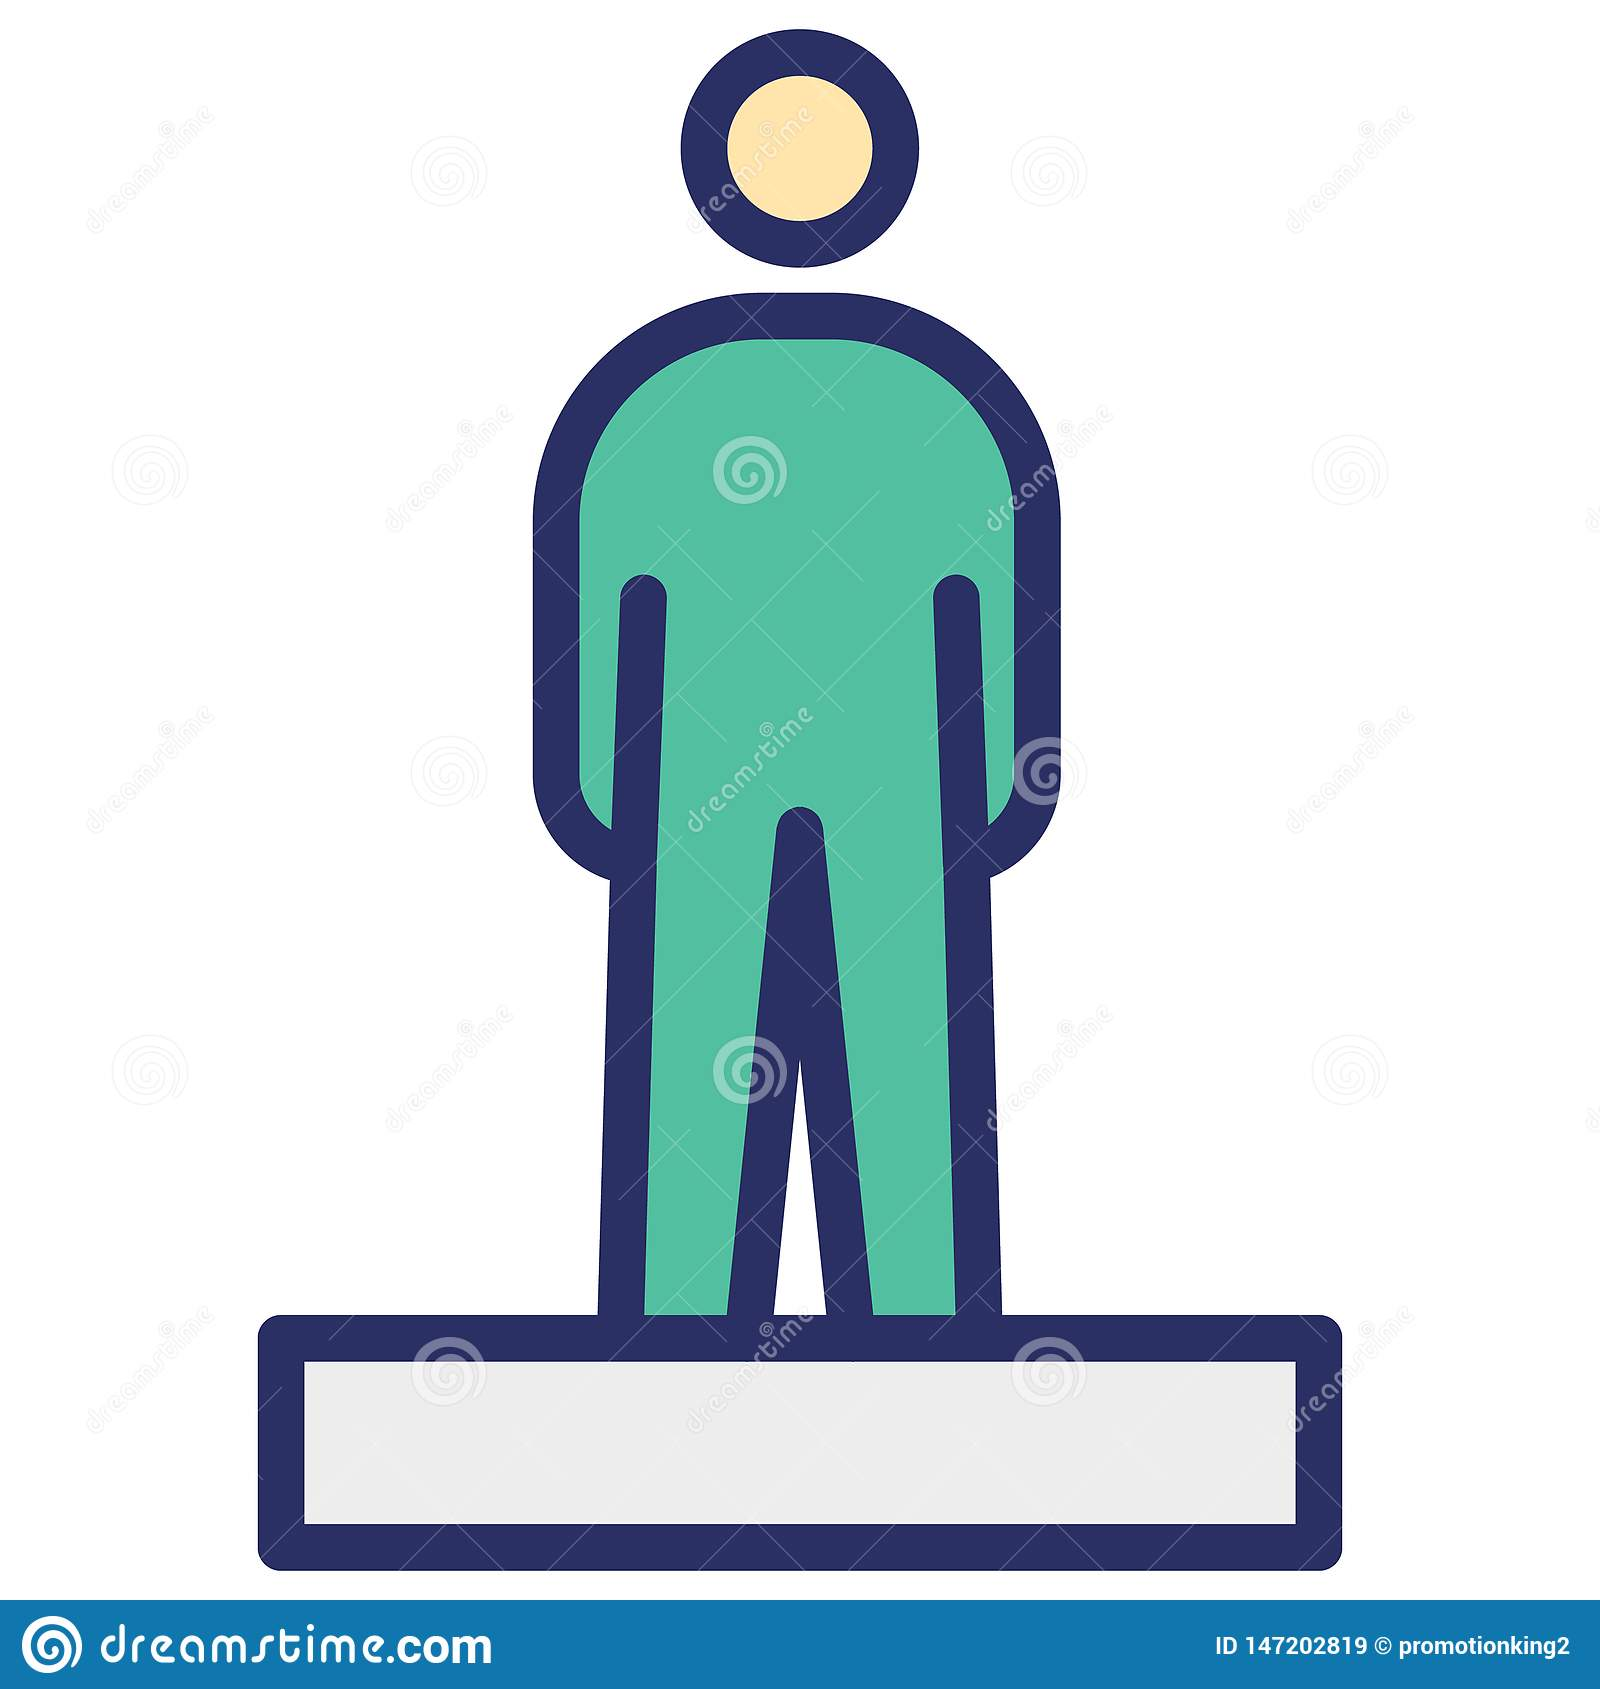 Award Isolated Vector Icon which can easily modify or edit Award Isolated Vector Icon which can easily modify or edit